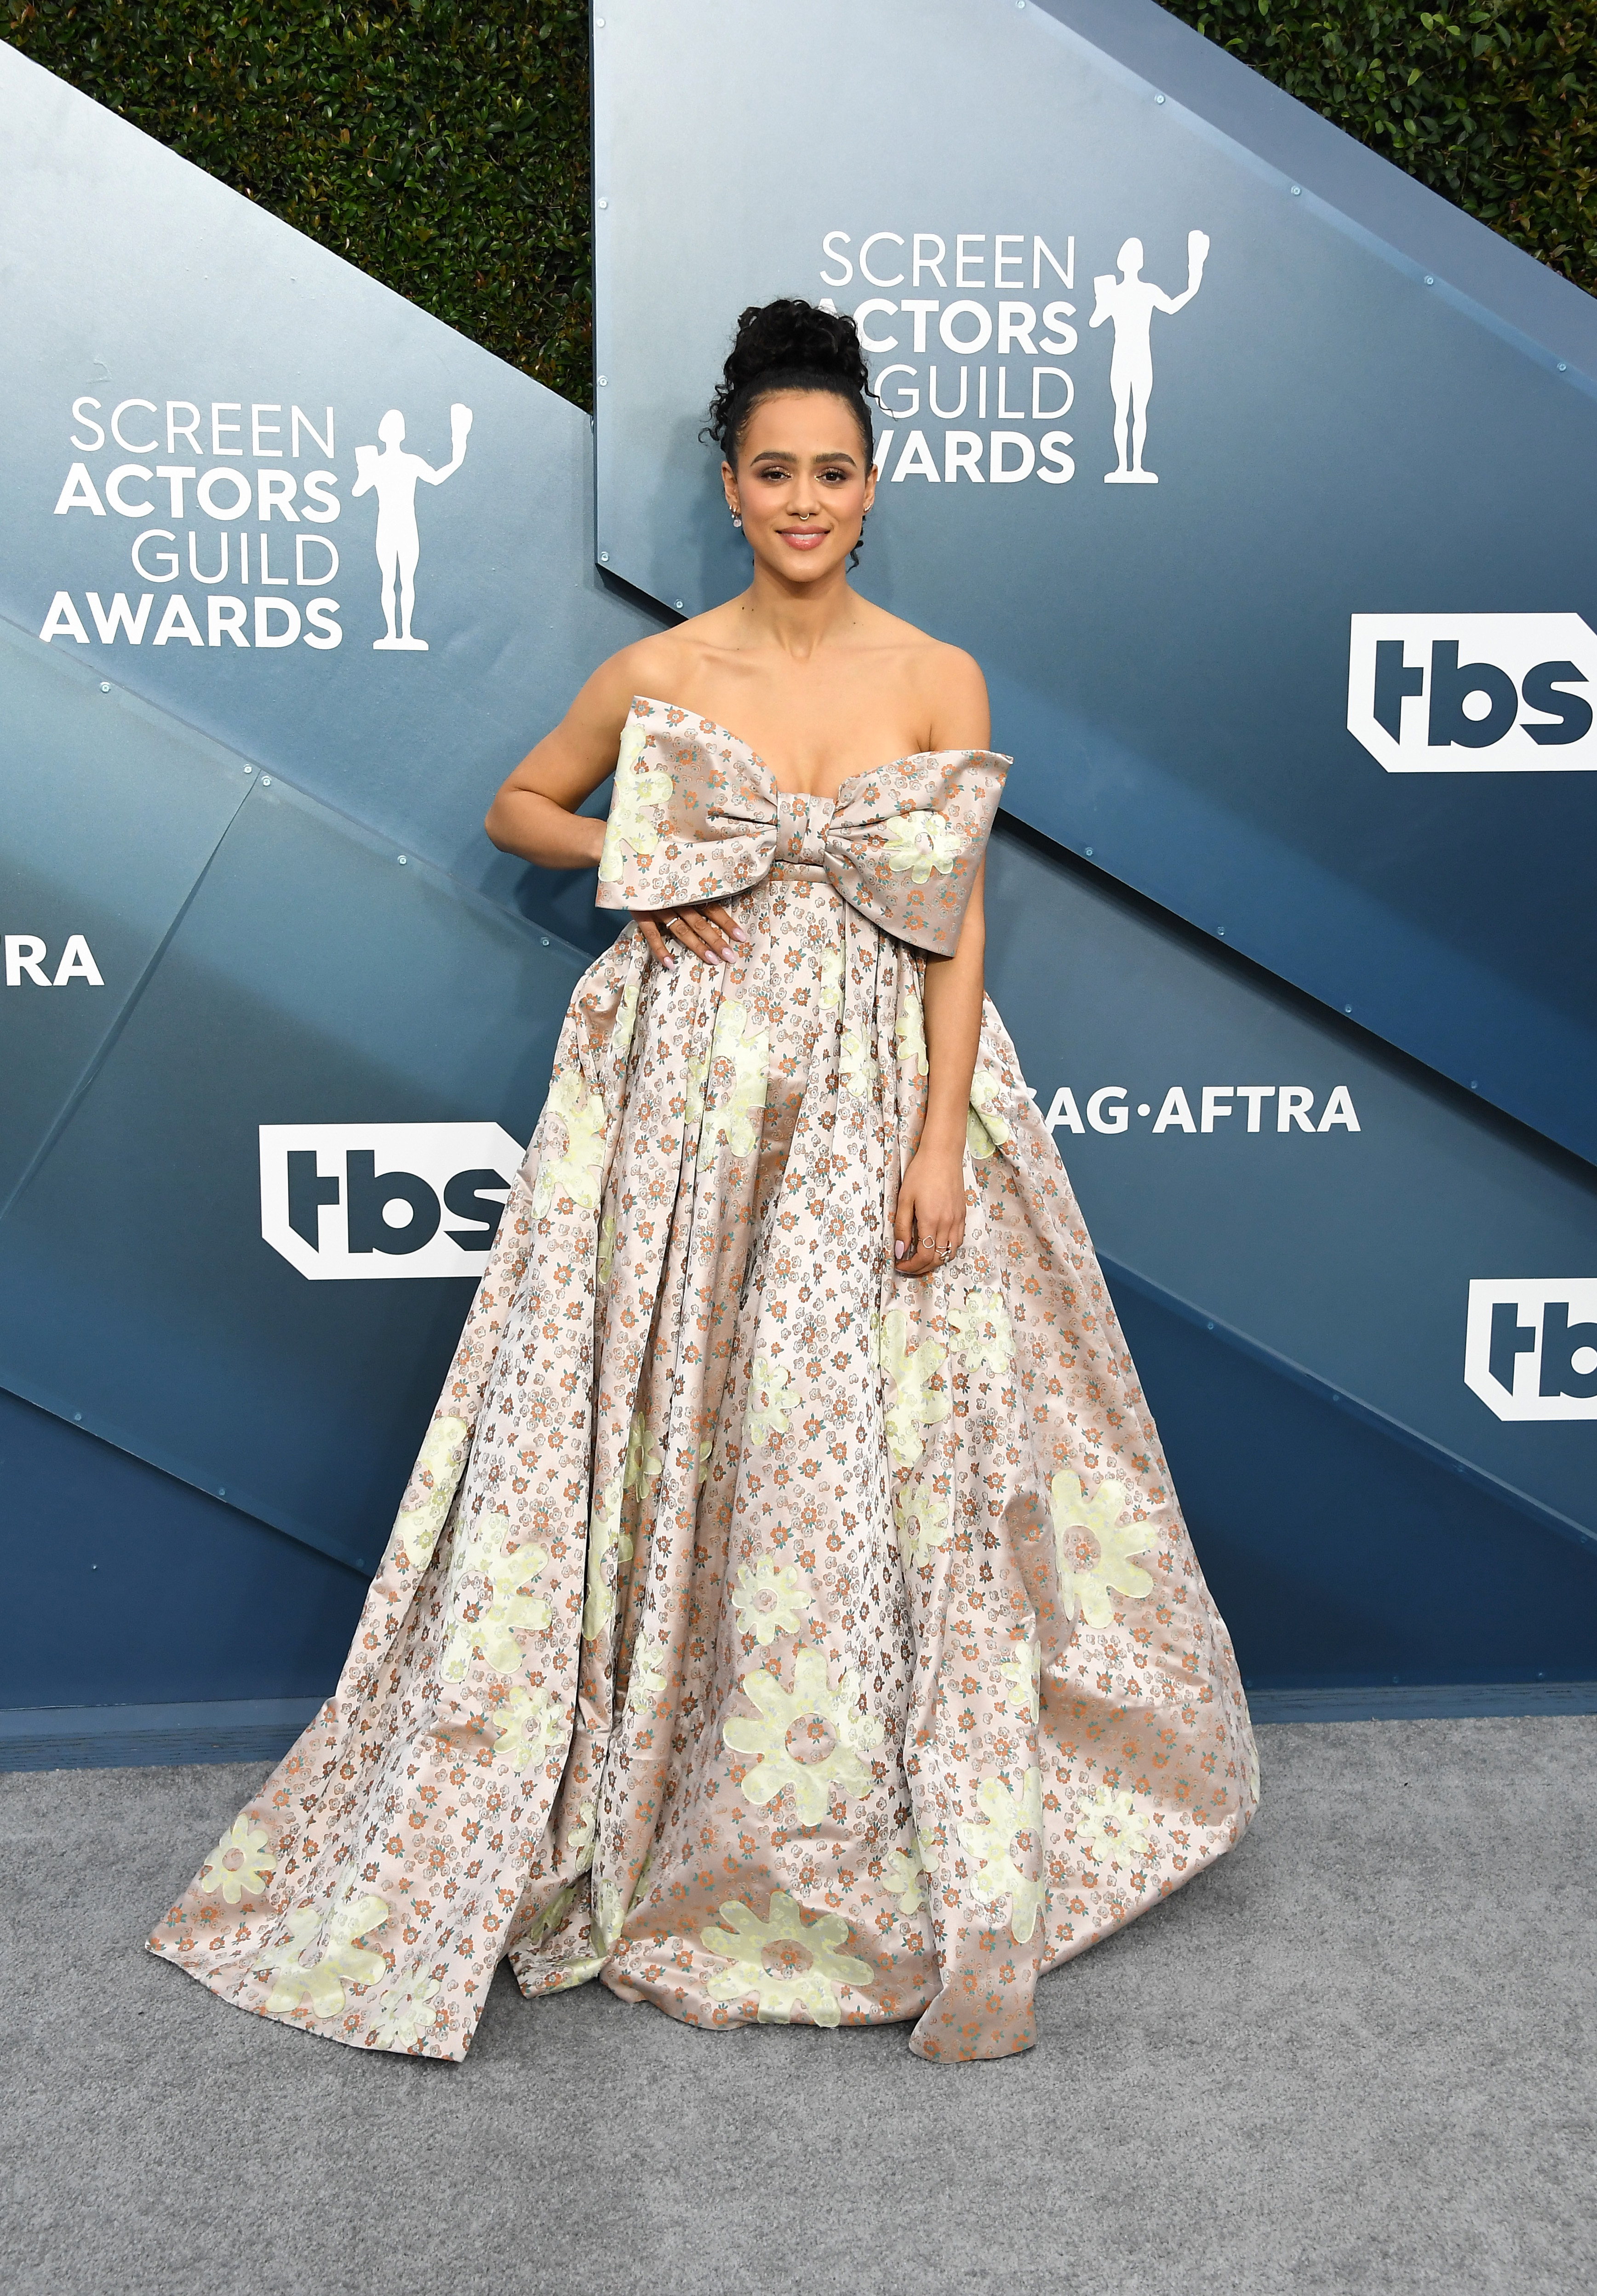 LOS ANGELES, CALIFORNIA - JANUARY 19: Nathalie Emmanuel attends the 26th Annual Screen ActorsGuild Awards at The Shrine Auditorium on January 19, 2020 in Los Angeles, California. (Photo by Steve Granitz/WireImage)